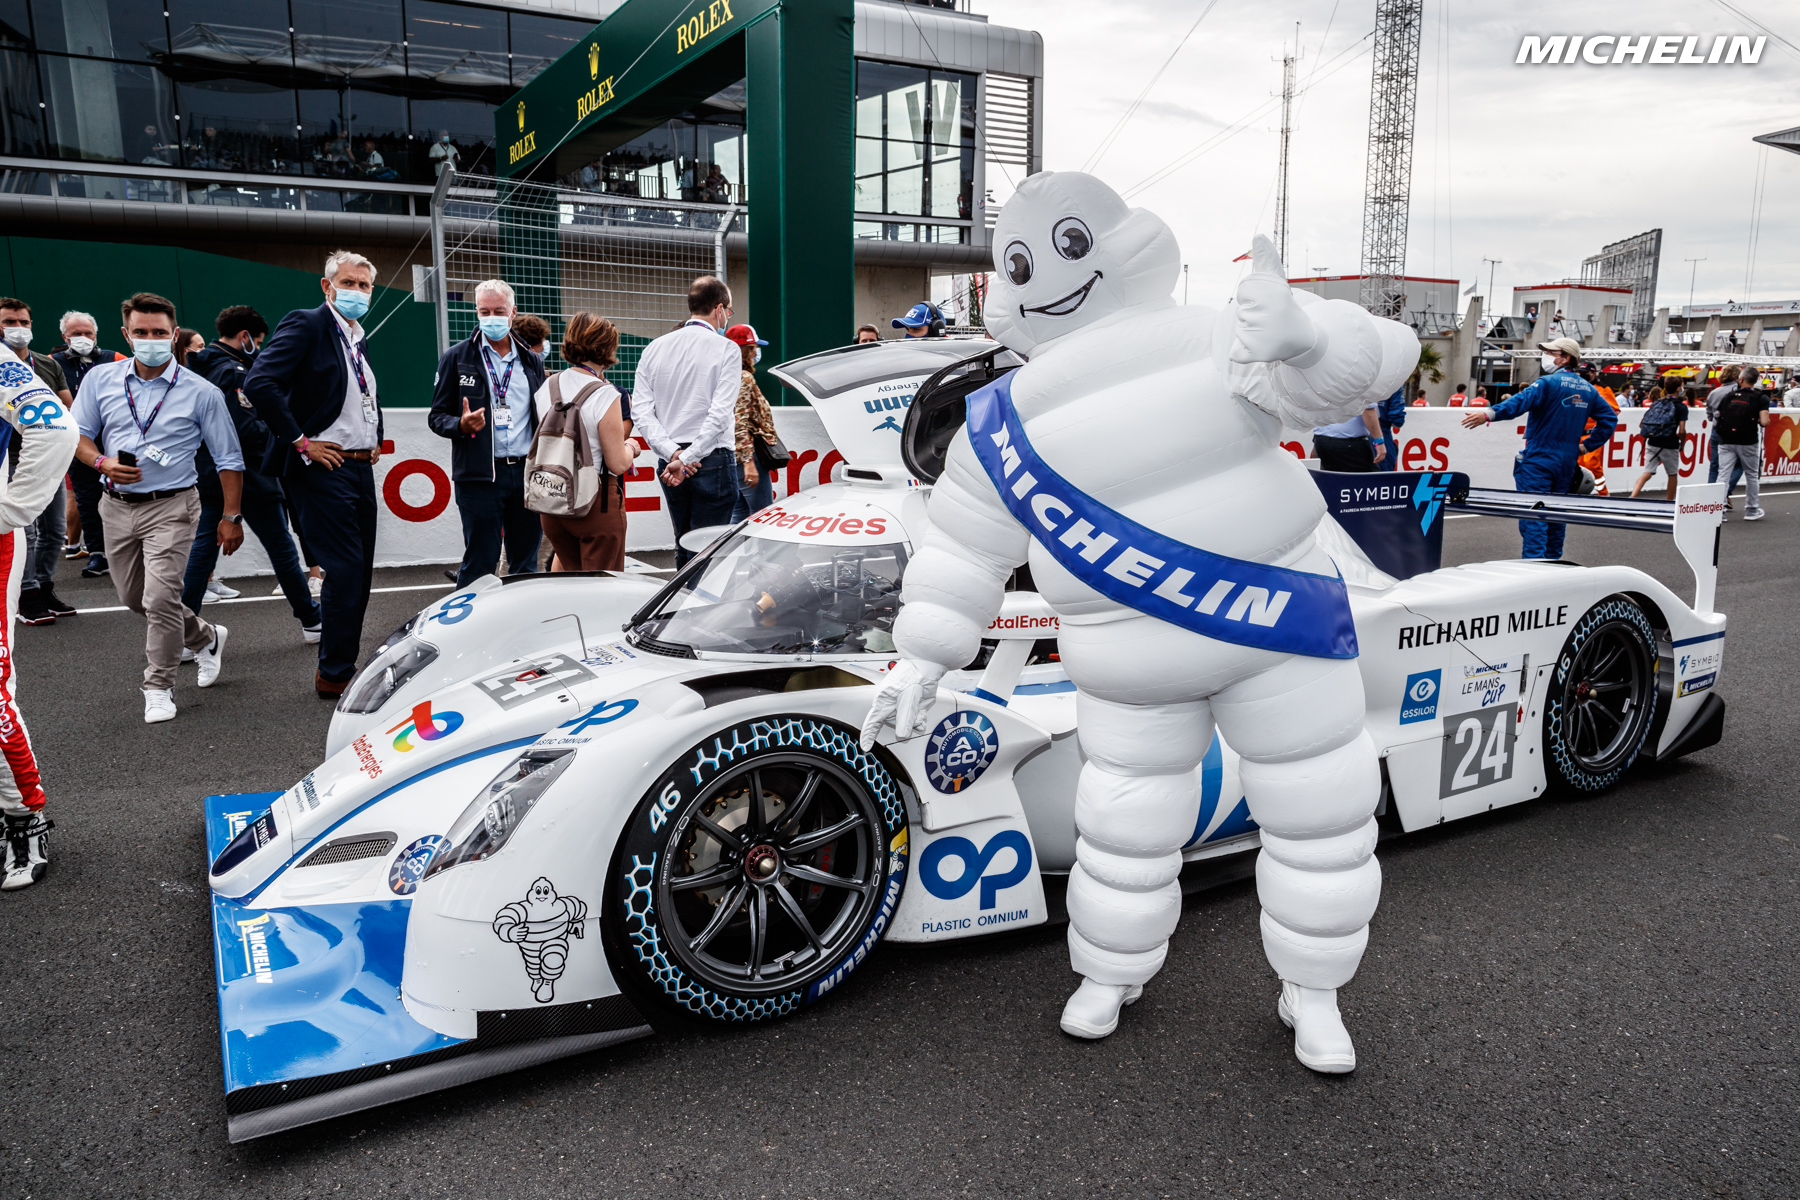 Le Mans 24 Hours: an edition with a sustainable flavor